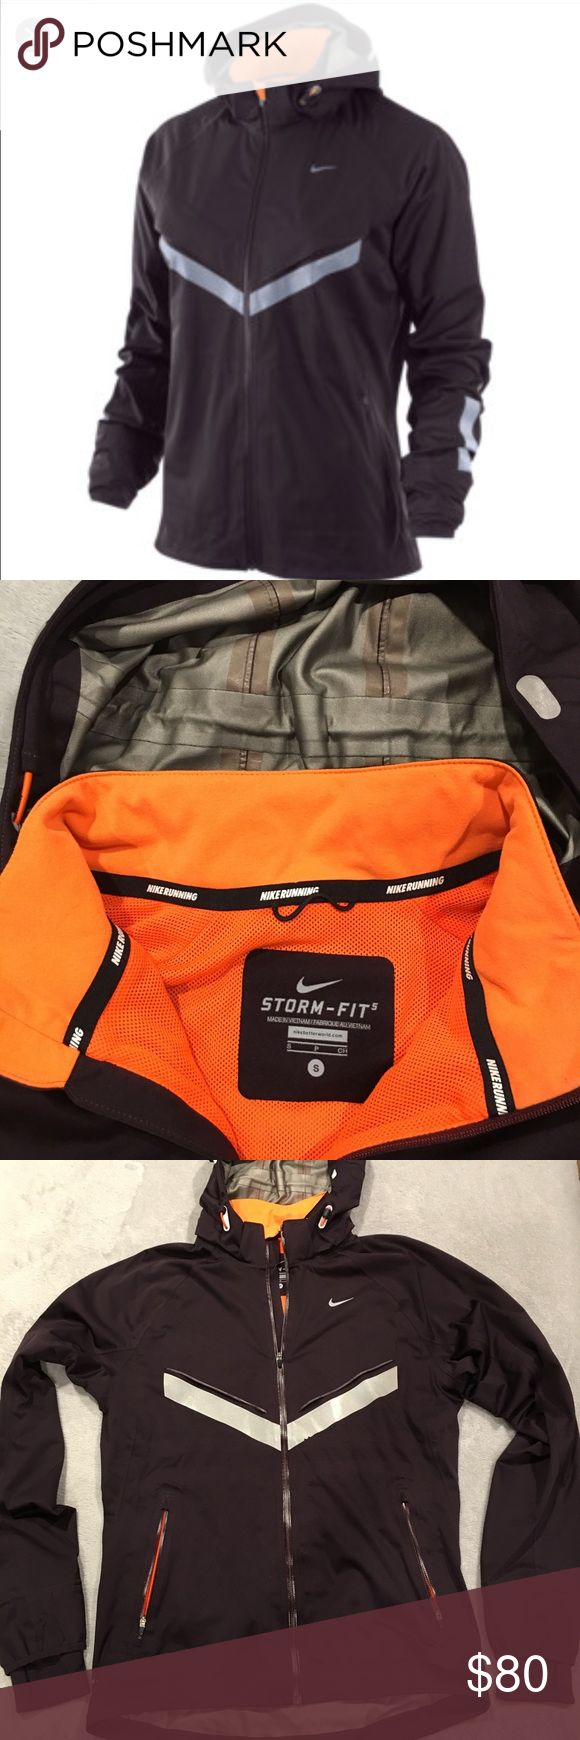 Nike Vapor Windrunner *reflective Nike vapor windrunner jacket, size small, GUC, it's a beautiful dark purple wig orange lining. The hood has built in rain visor, cinches on the back and is also removable. It has reflective strip on the front and back. Ha